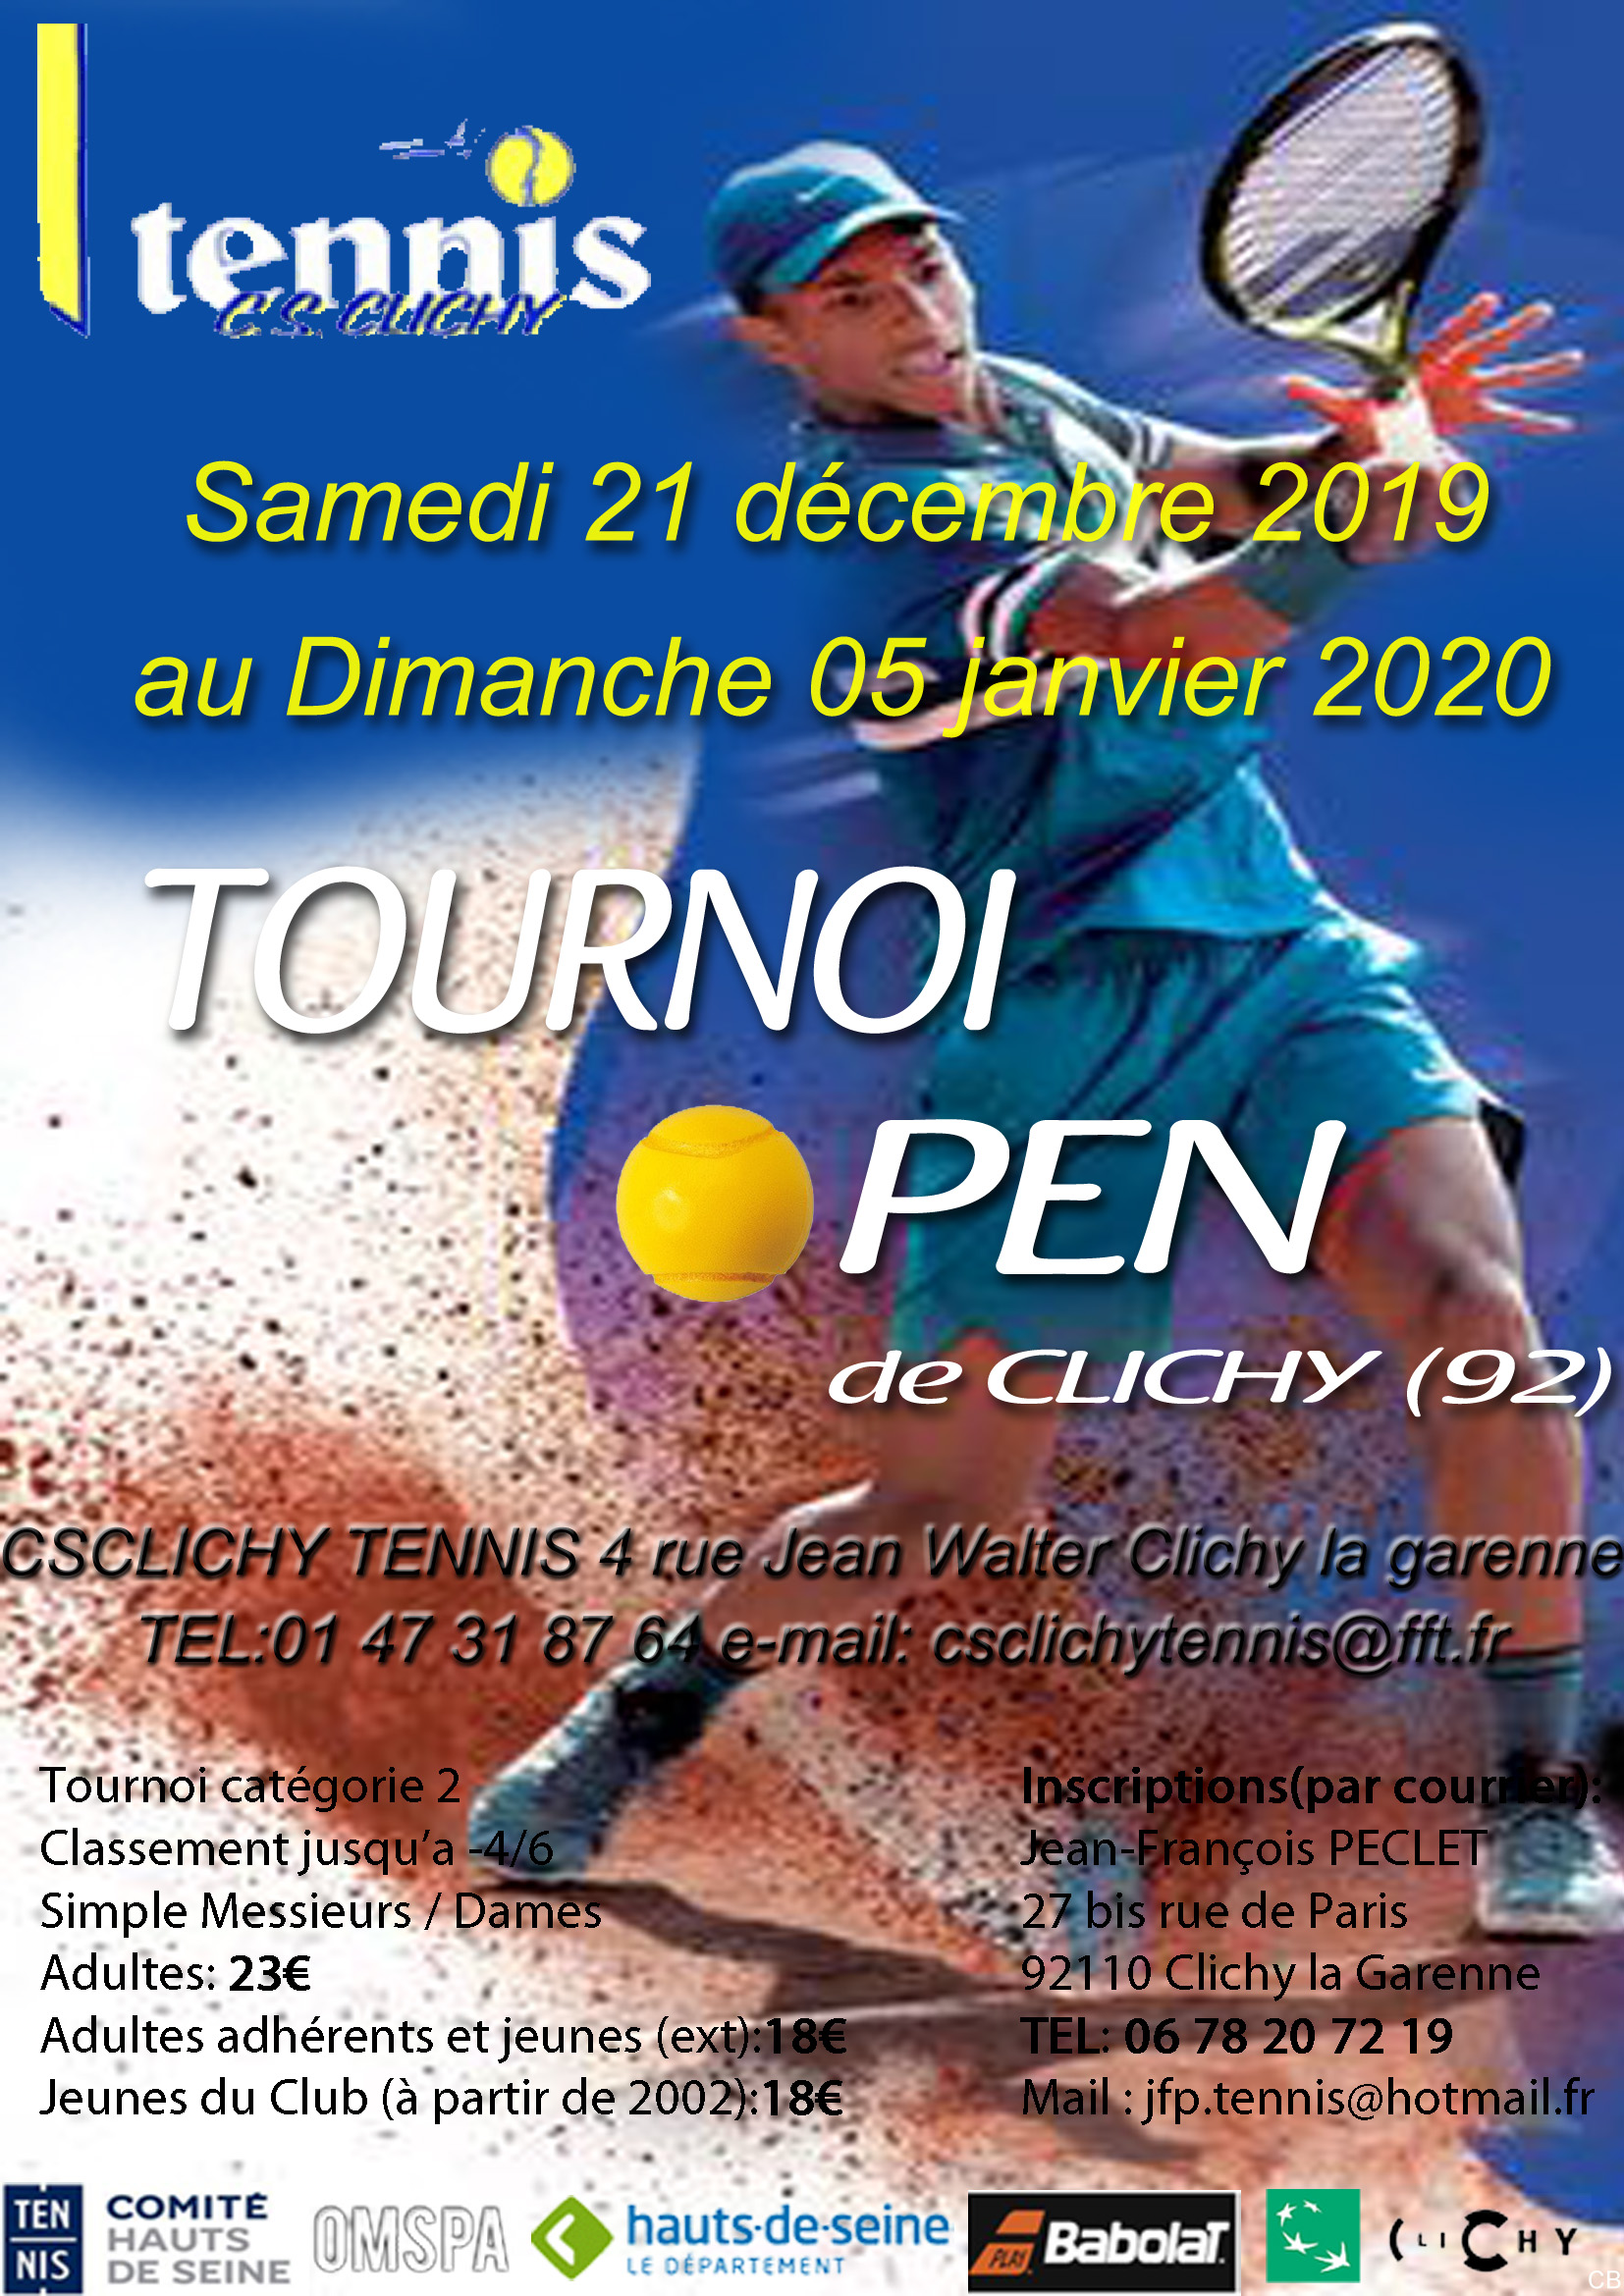 tournoiopen2020 copie